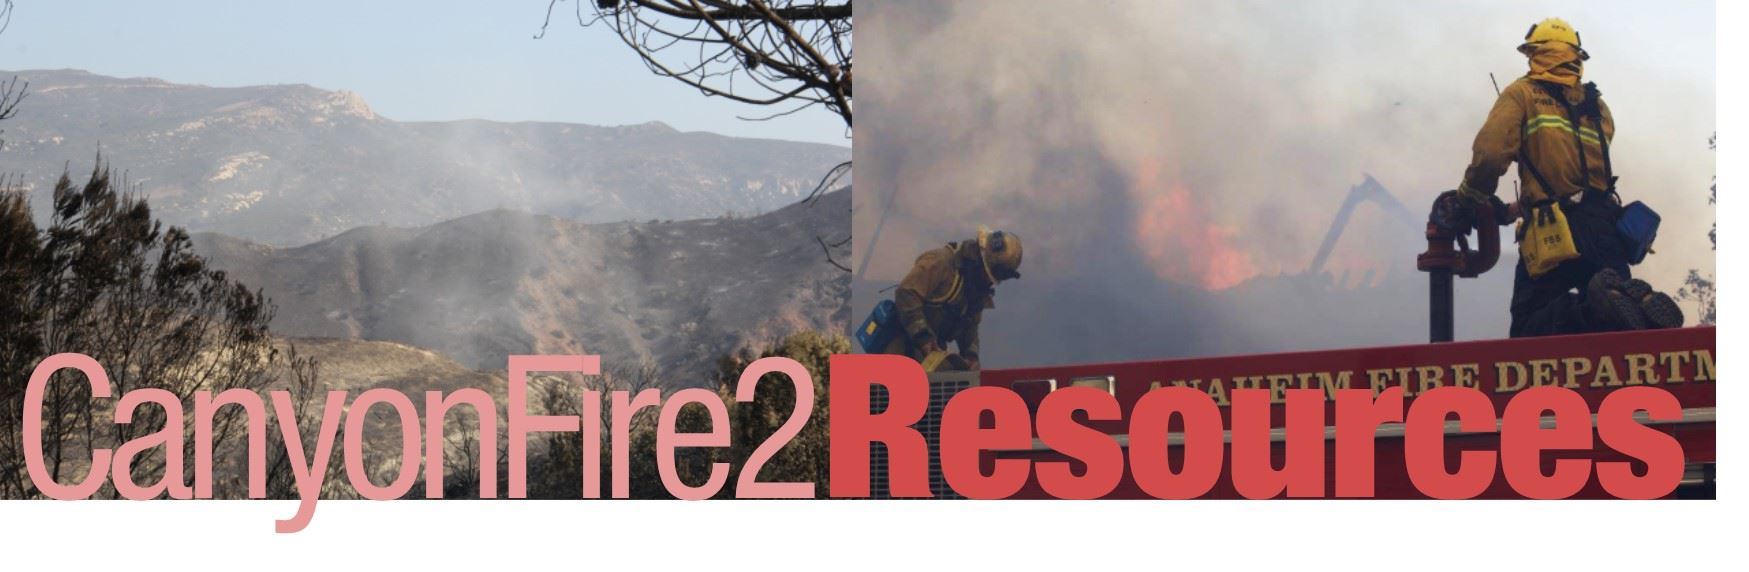 Canyon Fire 2 Resources Header